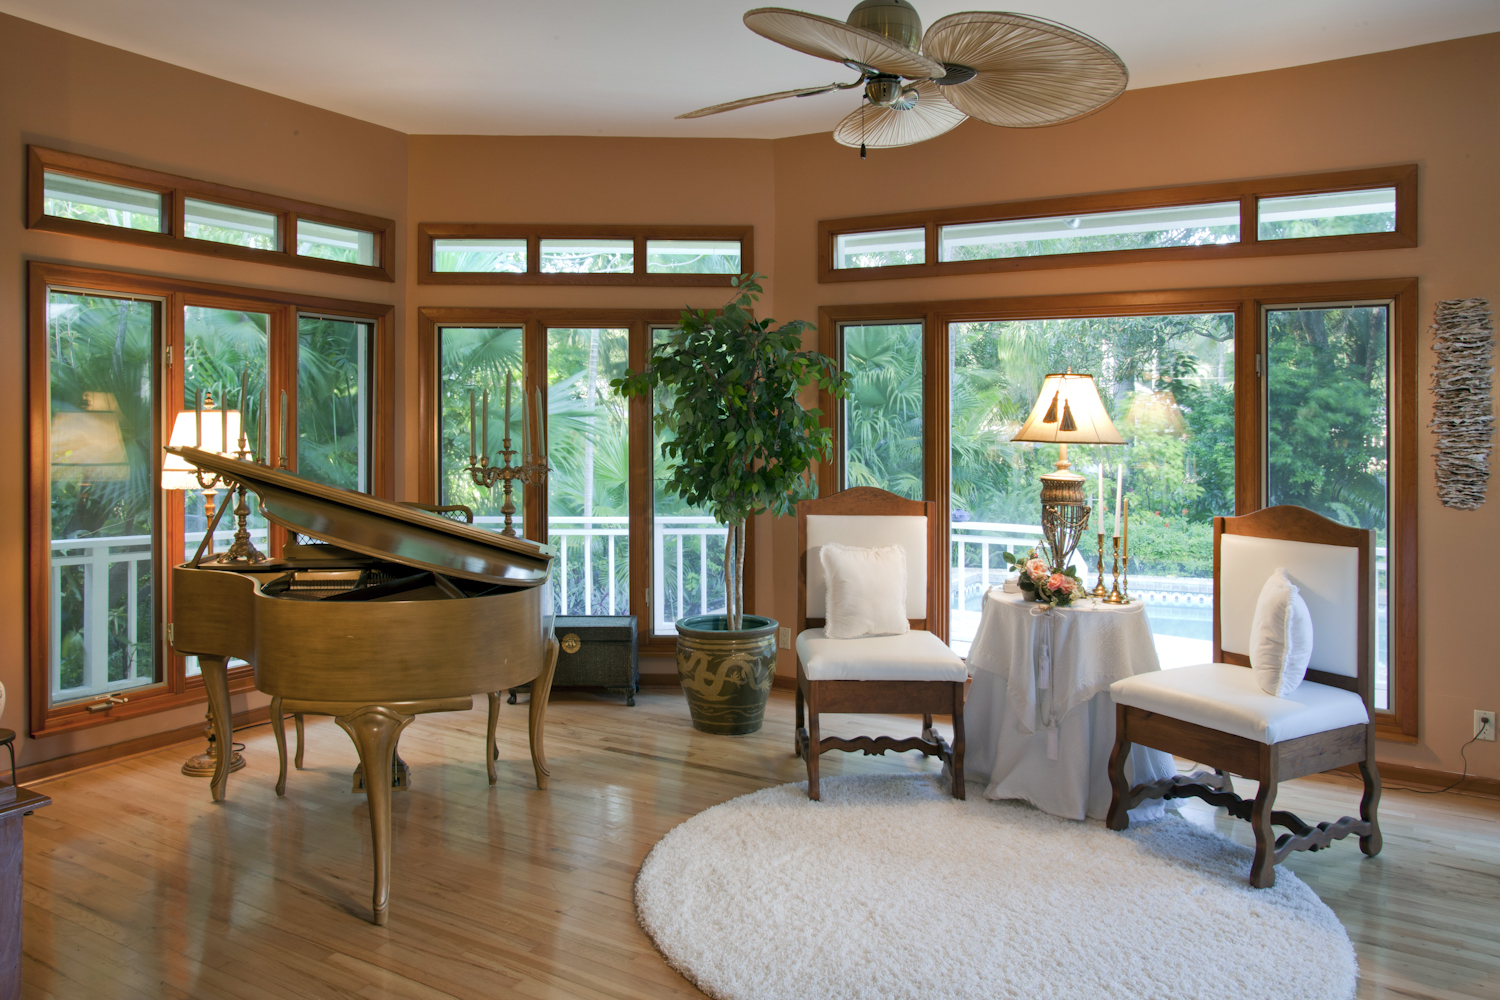 Interior family room with a beautiful garden view